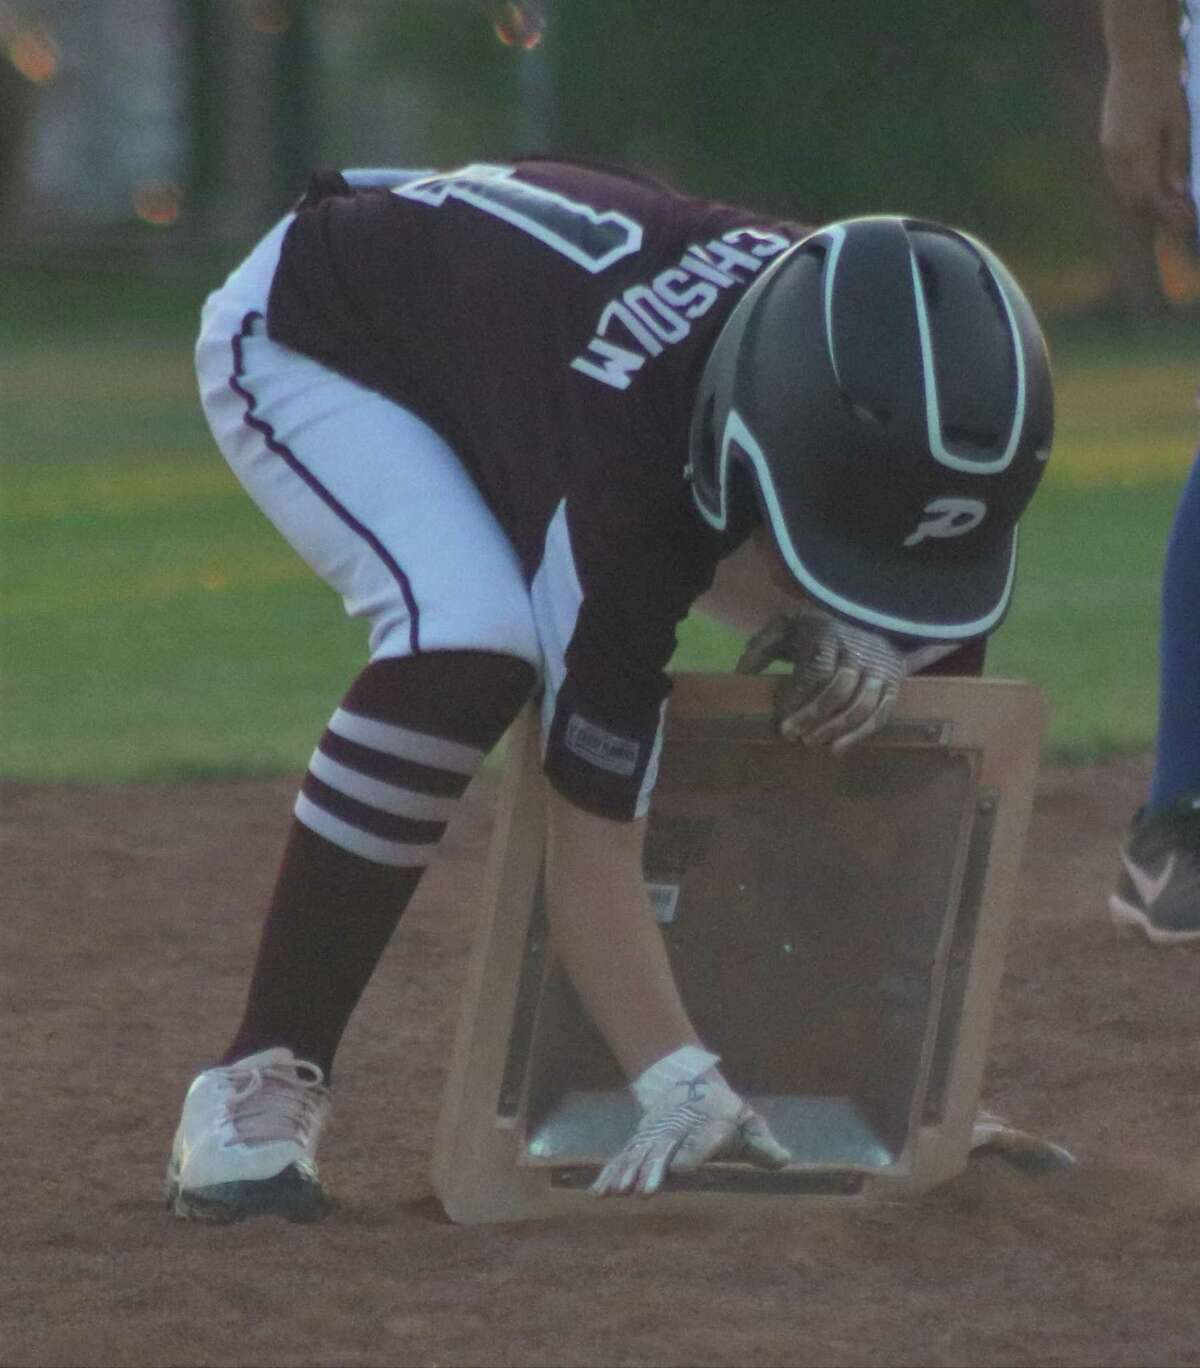 Pearland East All-Star Colt Chisolm fixes the second-base bag after hitting a fourth-inning double in Tuesday night's state championship game in Tyler.